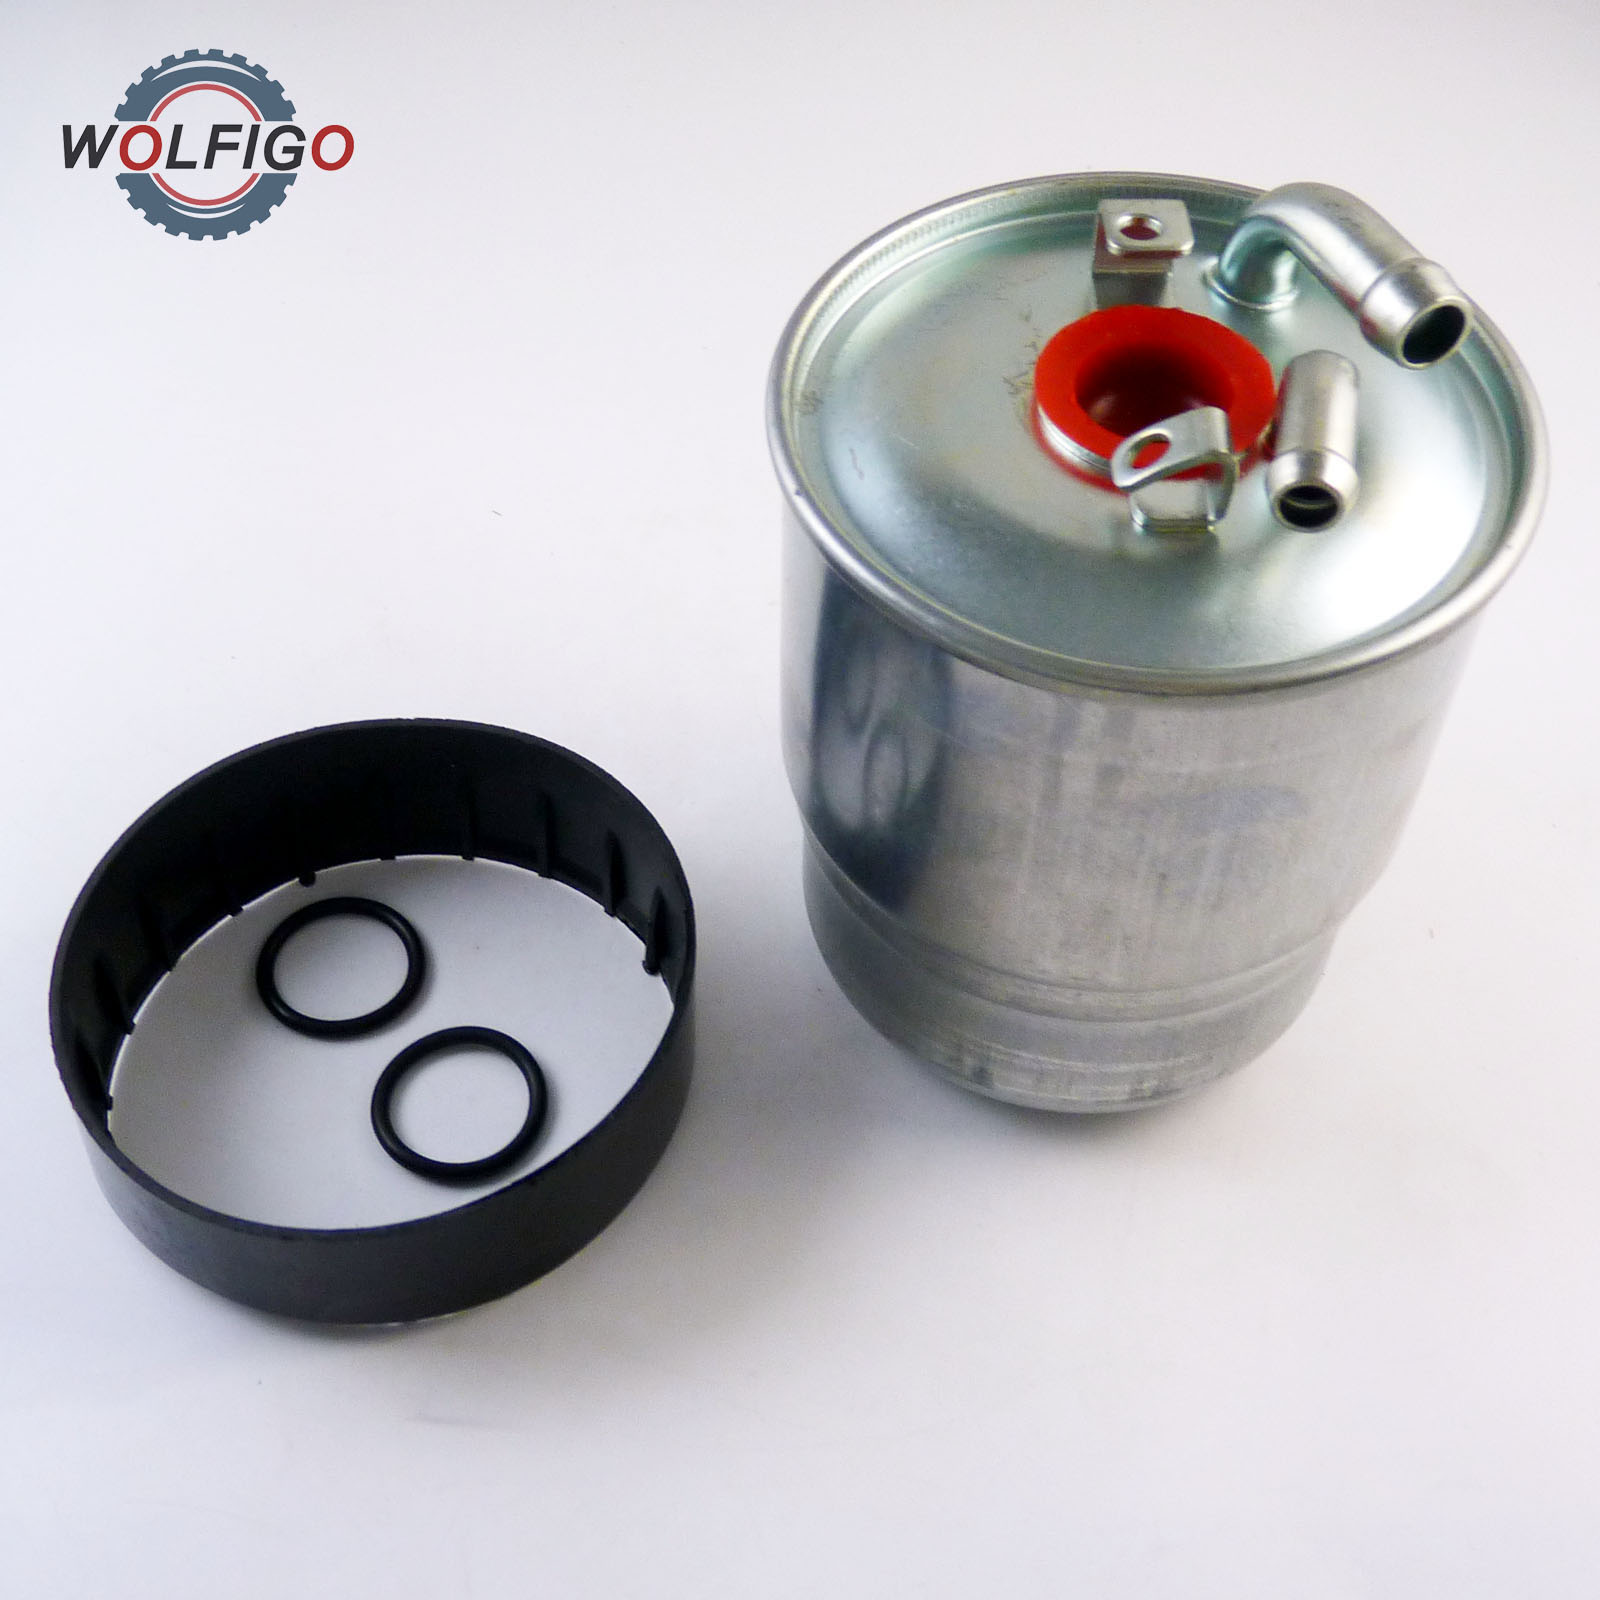 small resolution of wolfigo fuel filter 6420920501 for mercedes benz r350 gl320 e320 for dodge freightliner sprinter 2500 dodge sprinter 3500